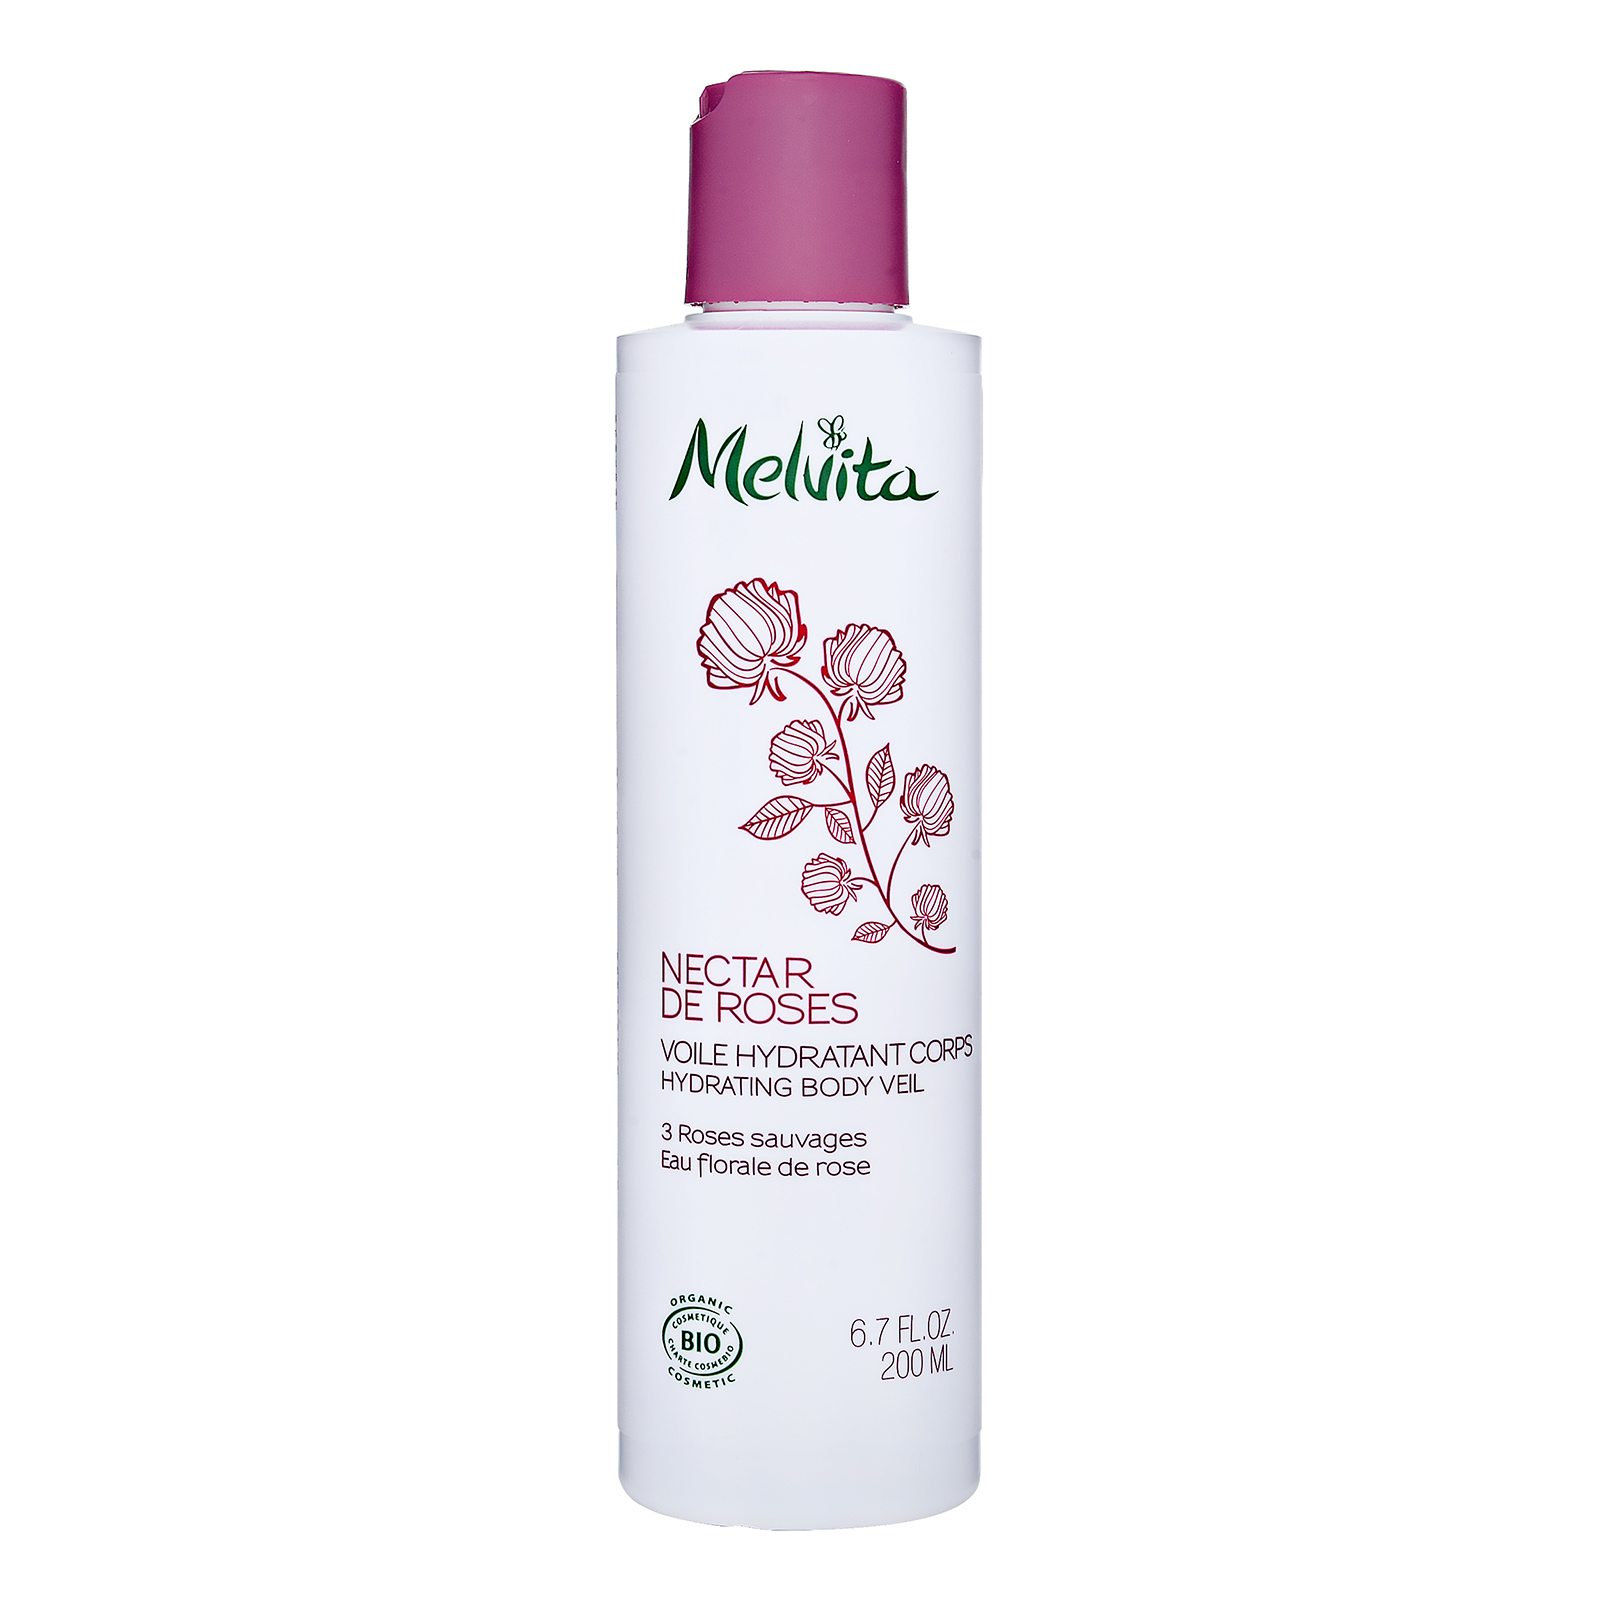 Melvita Nectar de Roses Hydrating Body Veil 6.7oz, 200ml